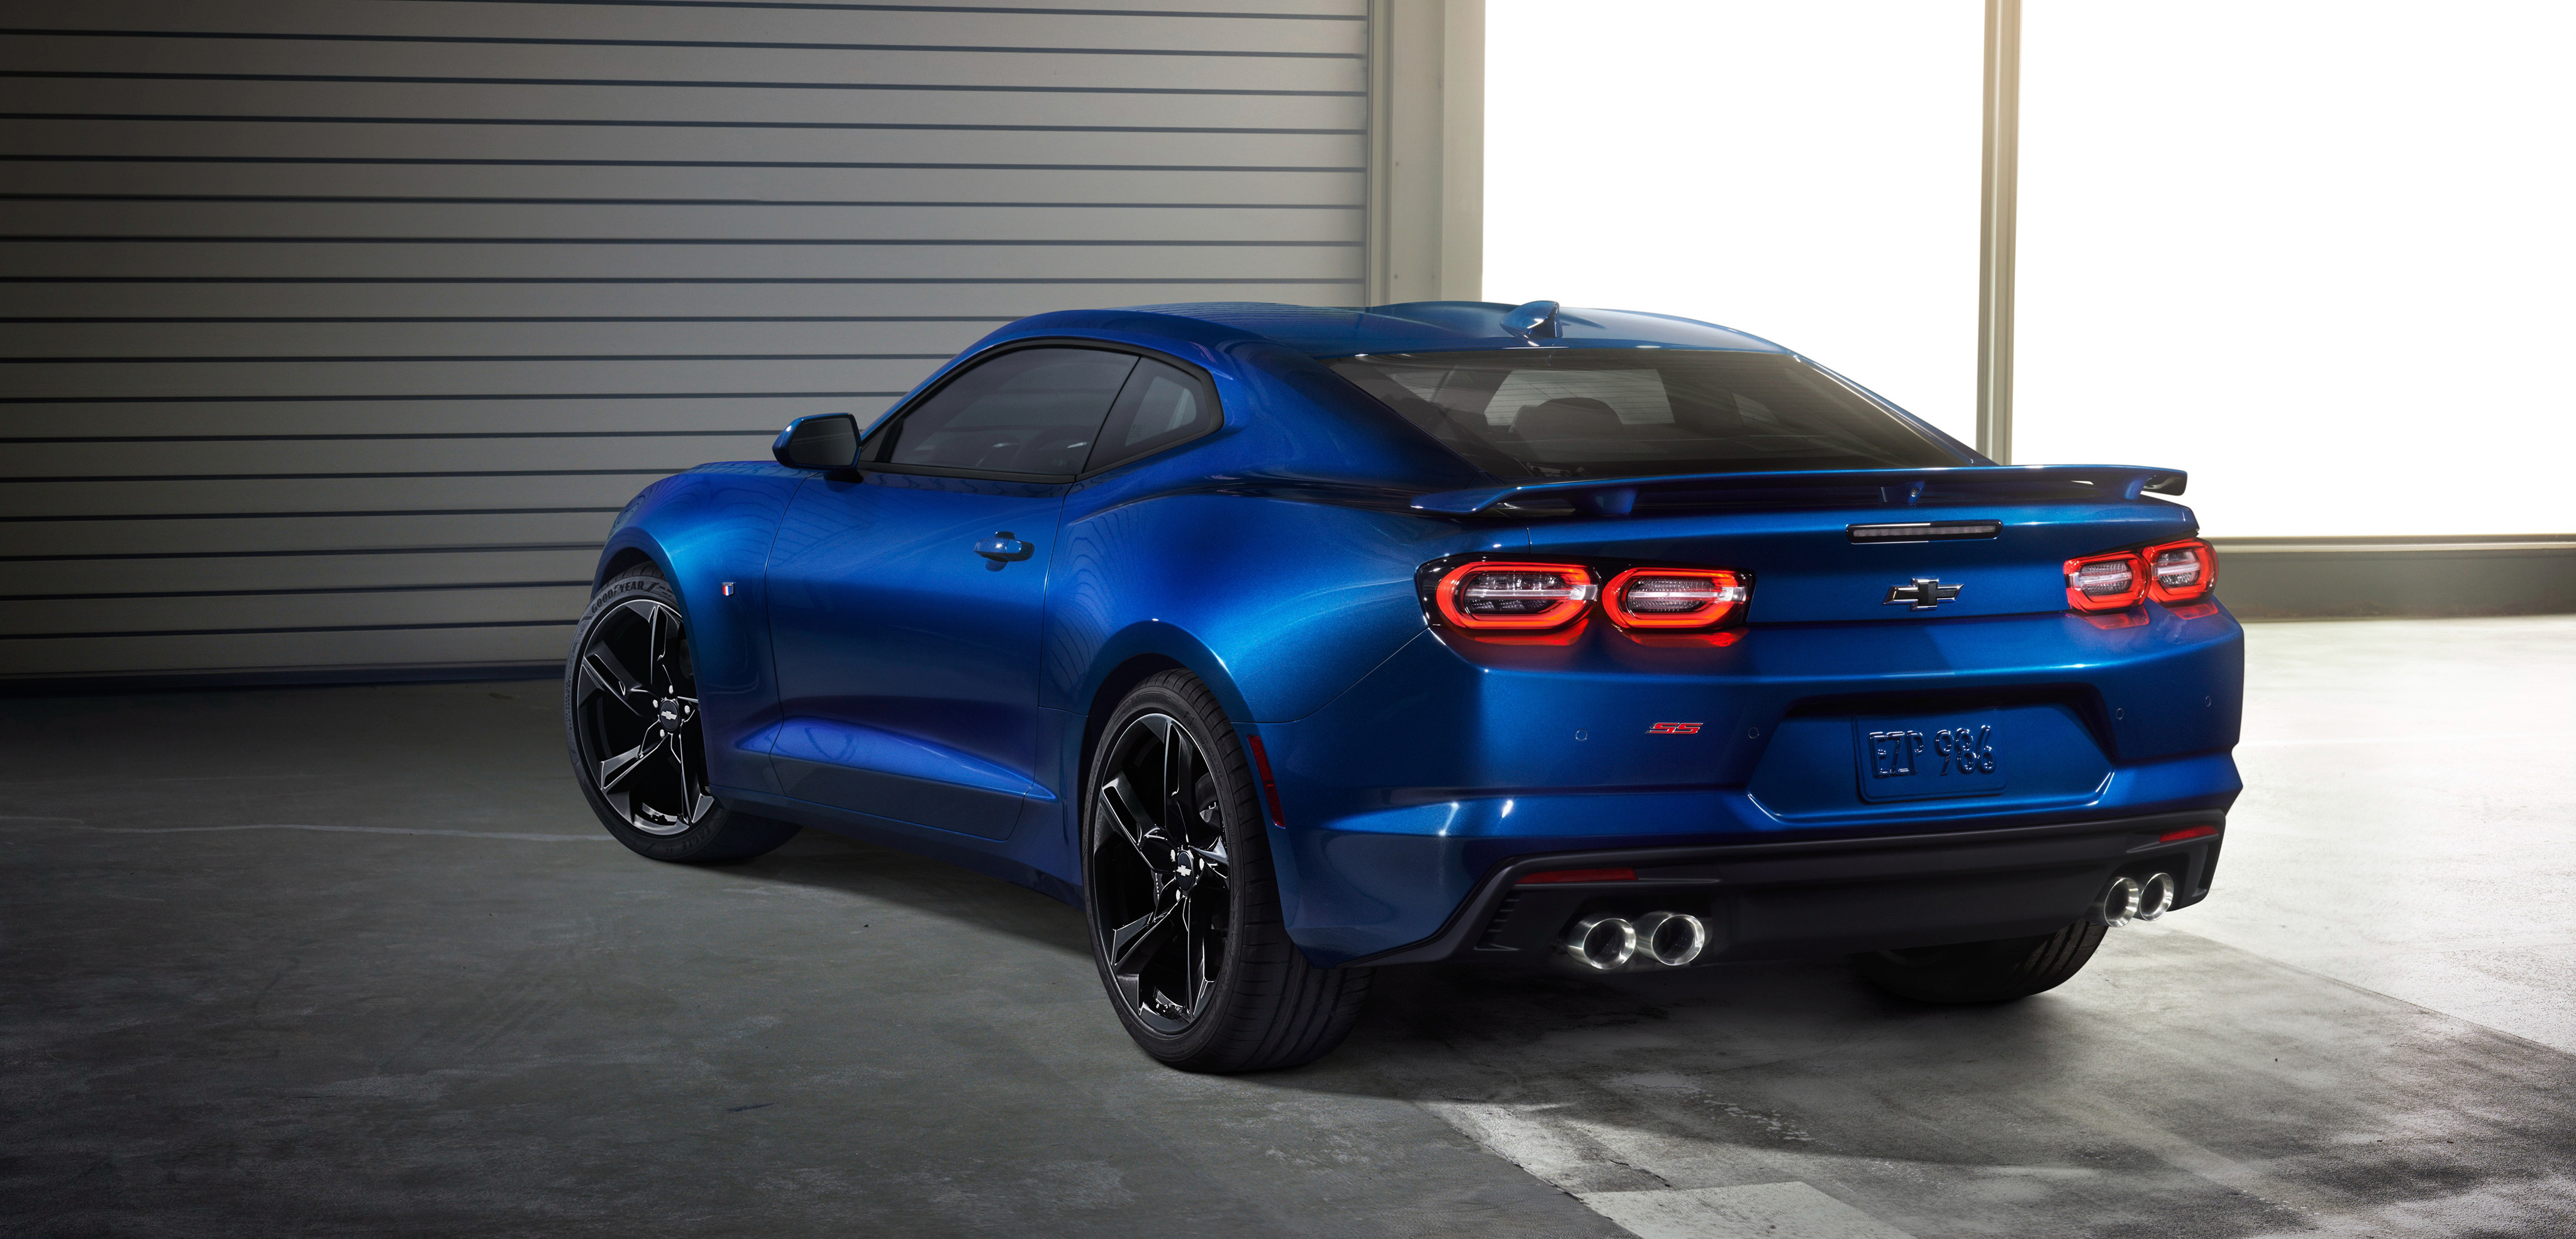 chevrolet camaro ss 2018 rear, hd cars, 4k wallpapers, images